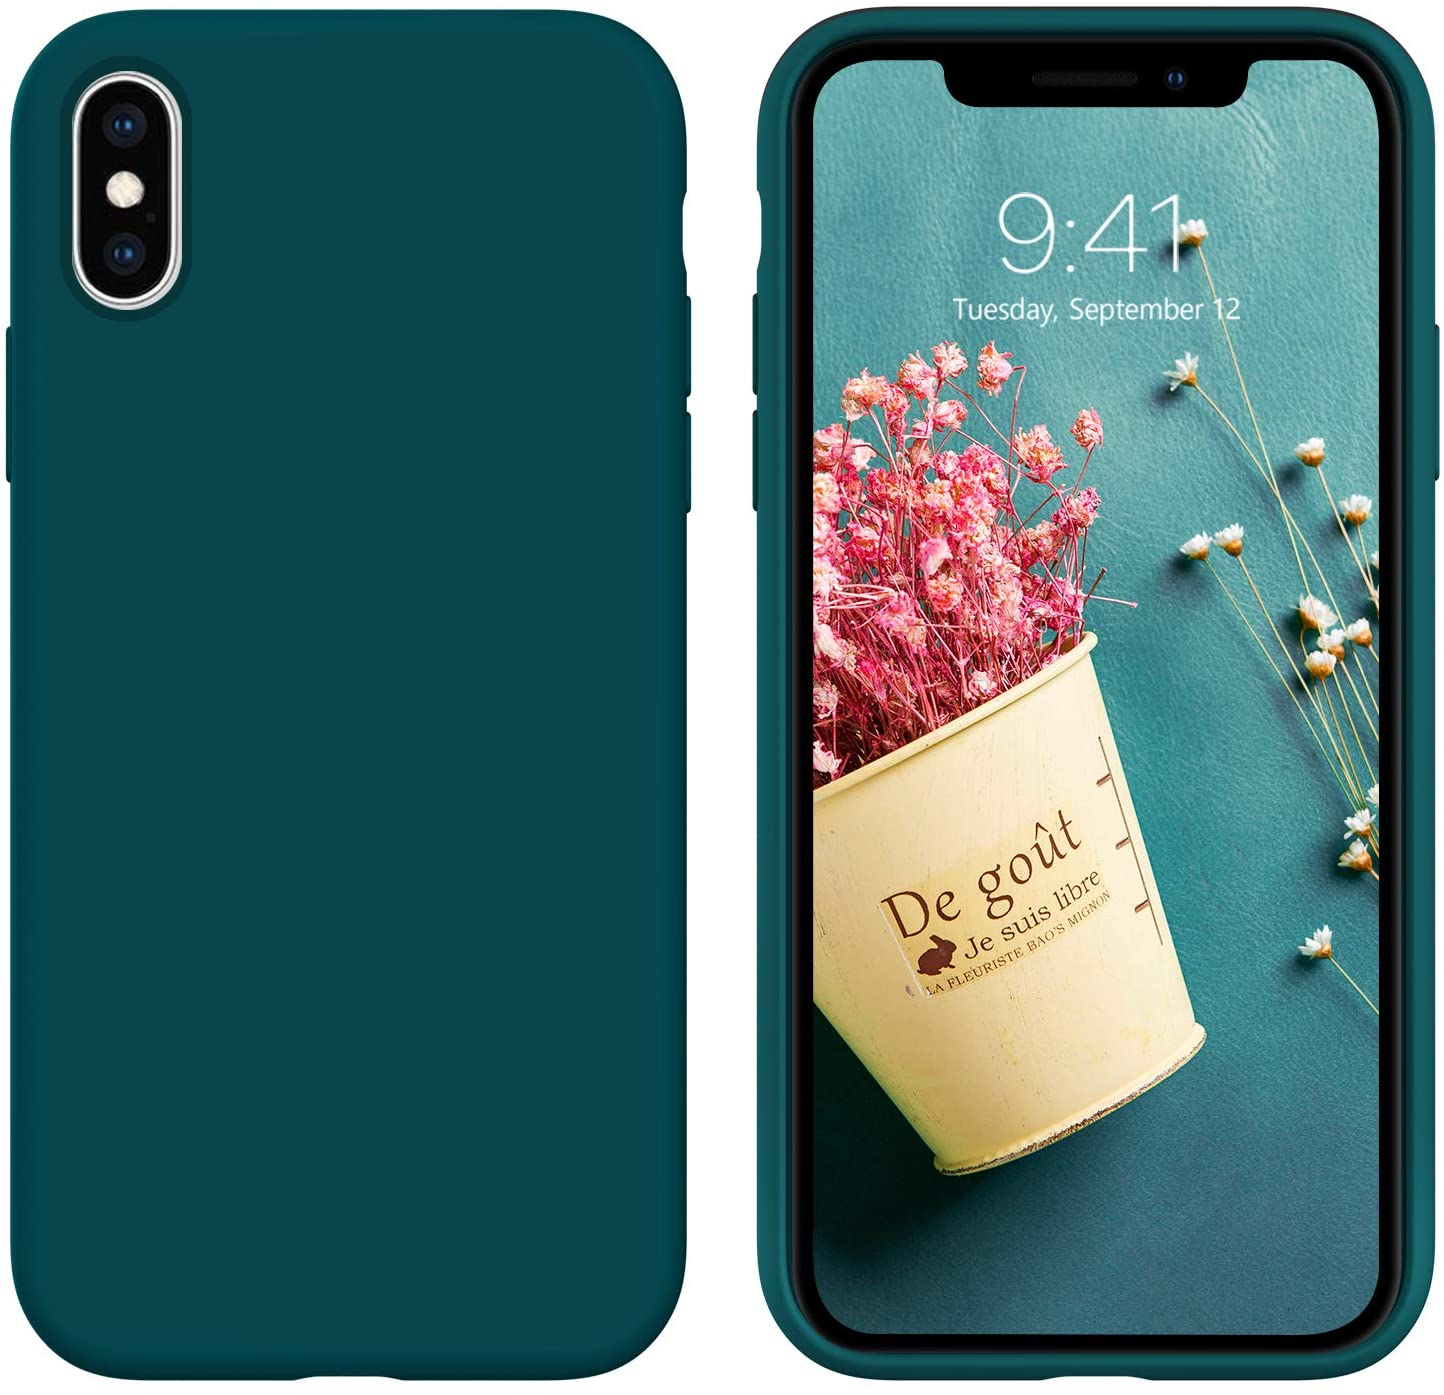 iPhone Xs Case,iPhone X Case,DUEDUE Liquid Silicone Soft Gel Rubber Slim Cover with Microfiber Cloth Lining Cushion Shockproof Full Body Protective Anti Scratch Case for iPhone X/iPhone Xs, Teal